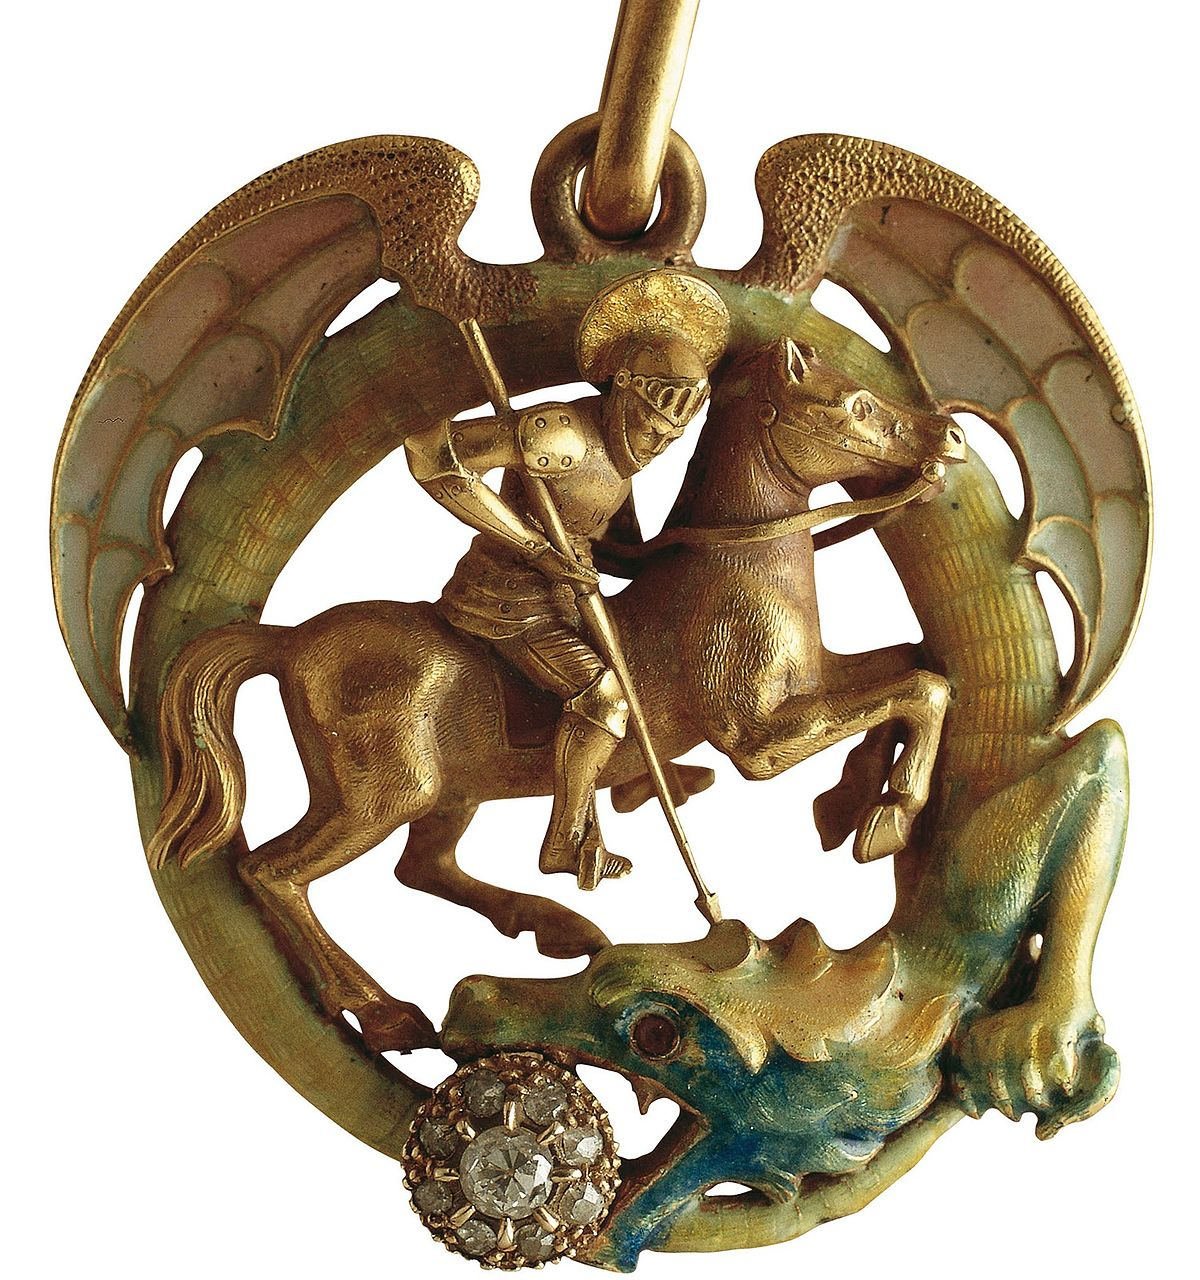 kopecks products petersburg rider slaying coin horse horseback to pendant dragon il george fullxfull collections russian russia necklace slayer st